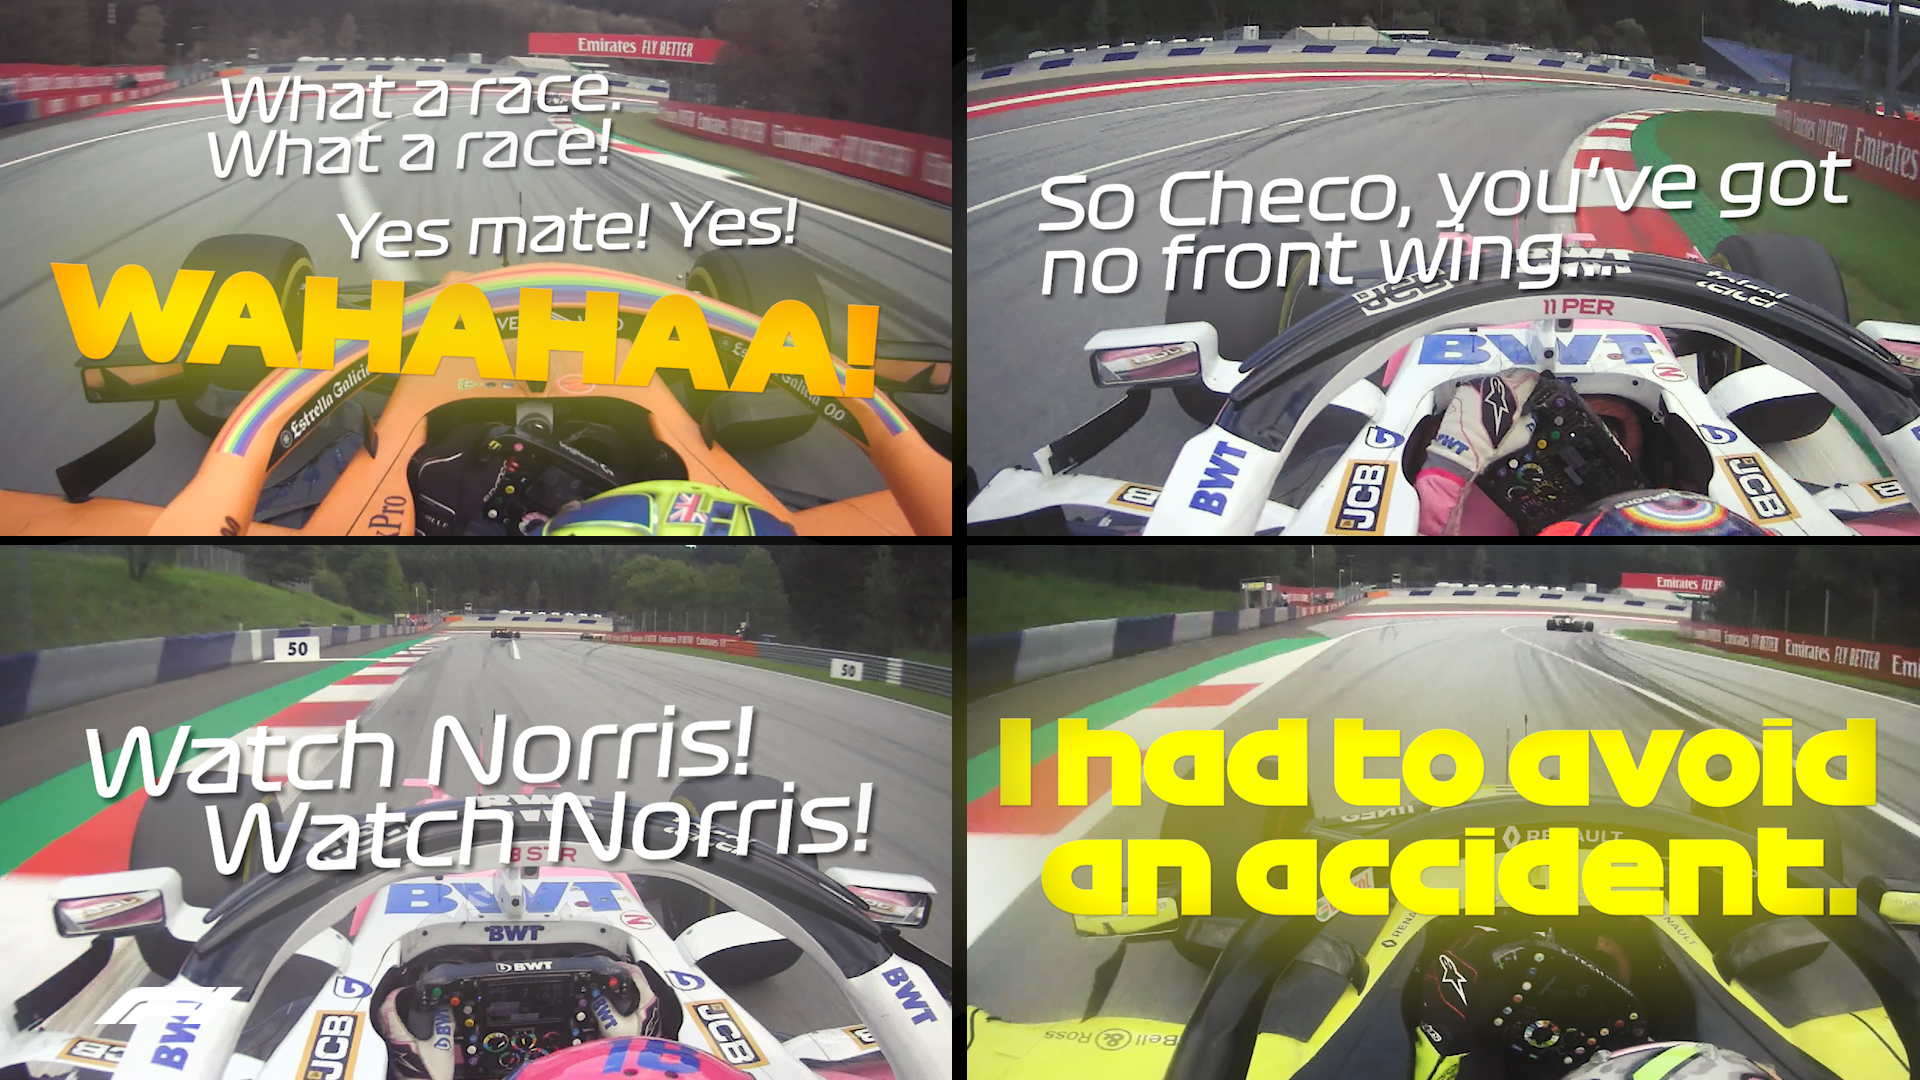 Styrian Grand Prix: Onboard 4-car view of incredible battle